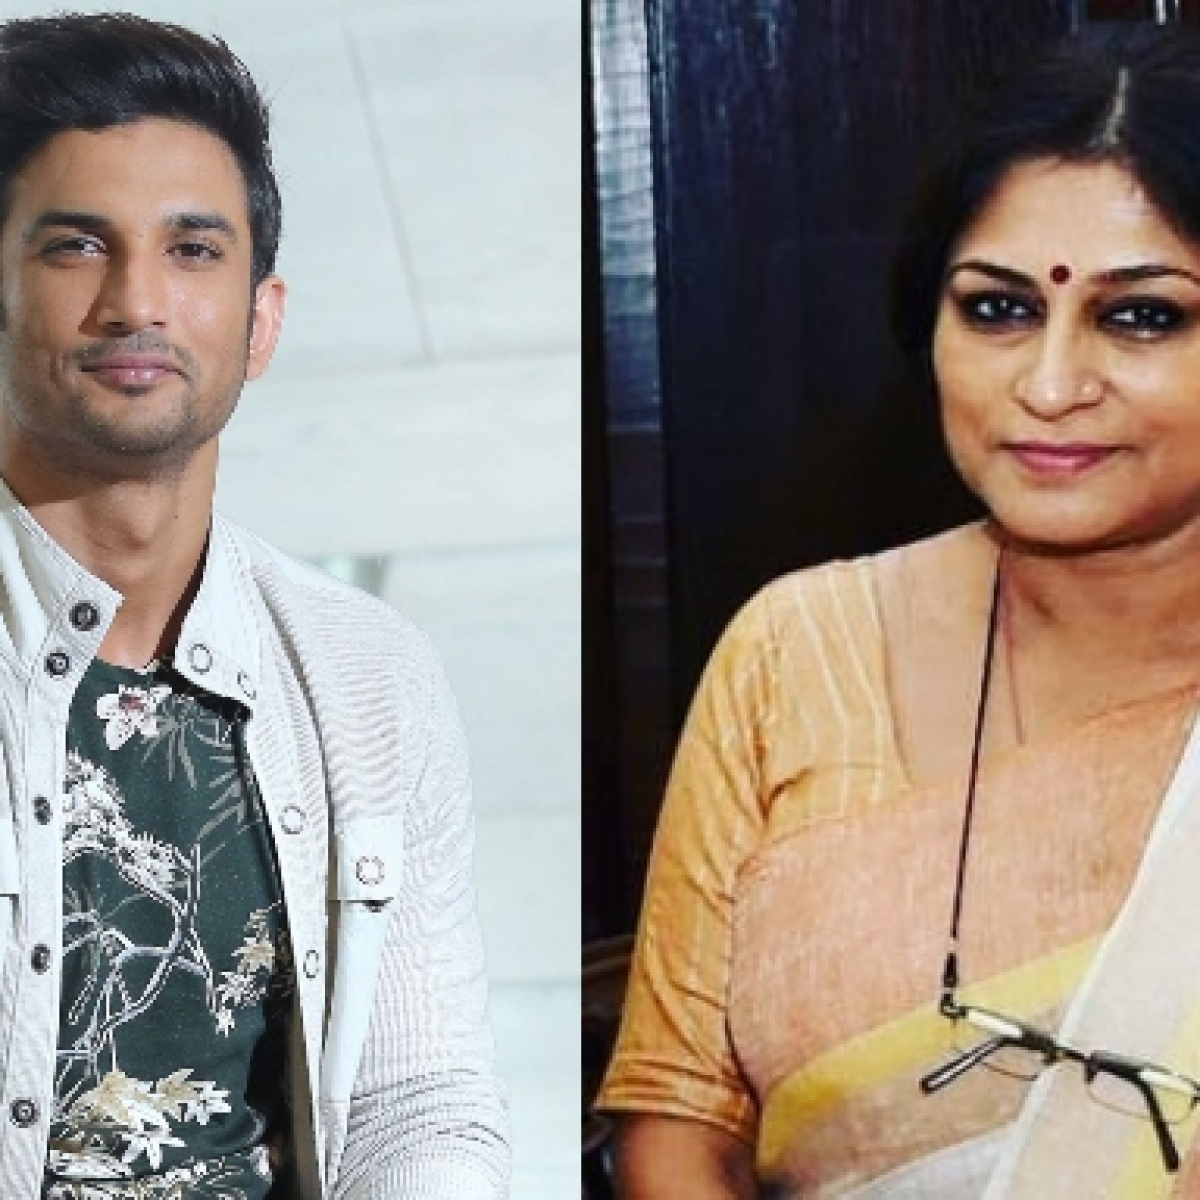 Sushant Singh Rajput's Instagram still active, being tampered with: Actress Roopa Ganguly demands CBI probe